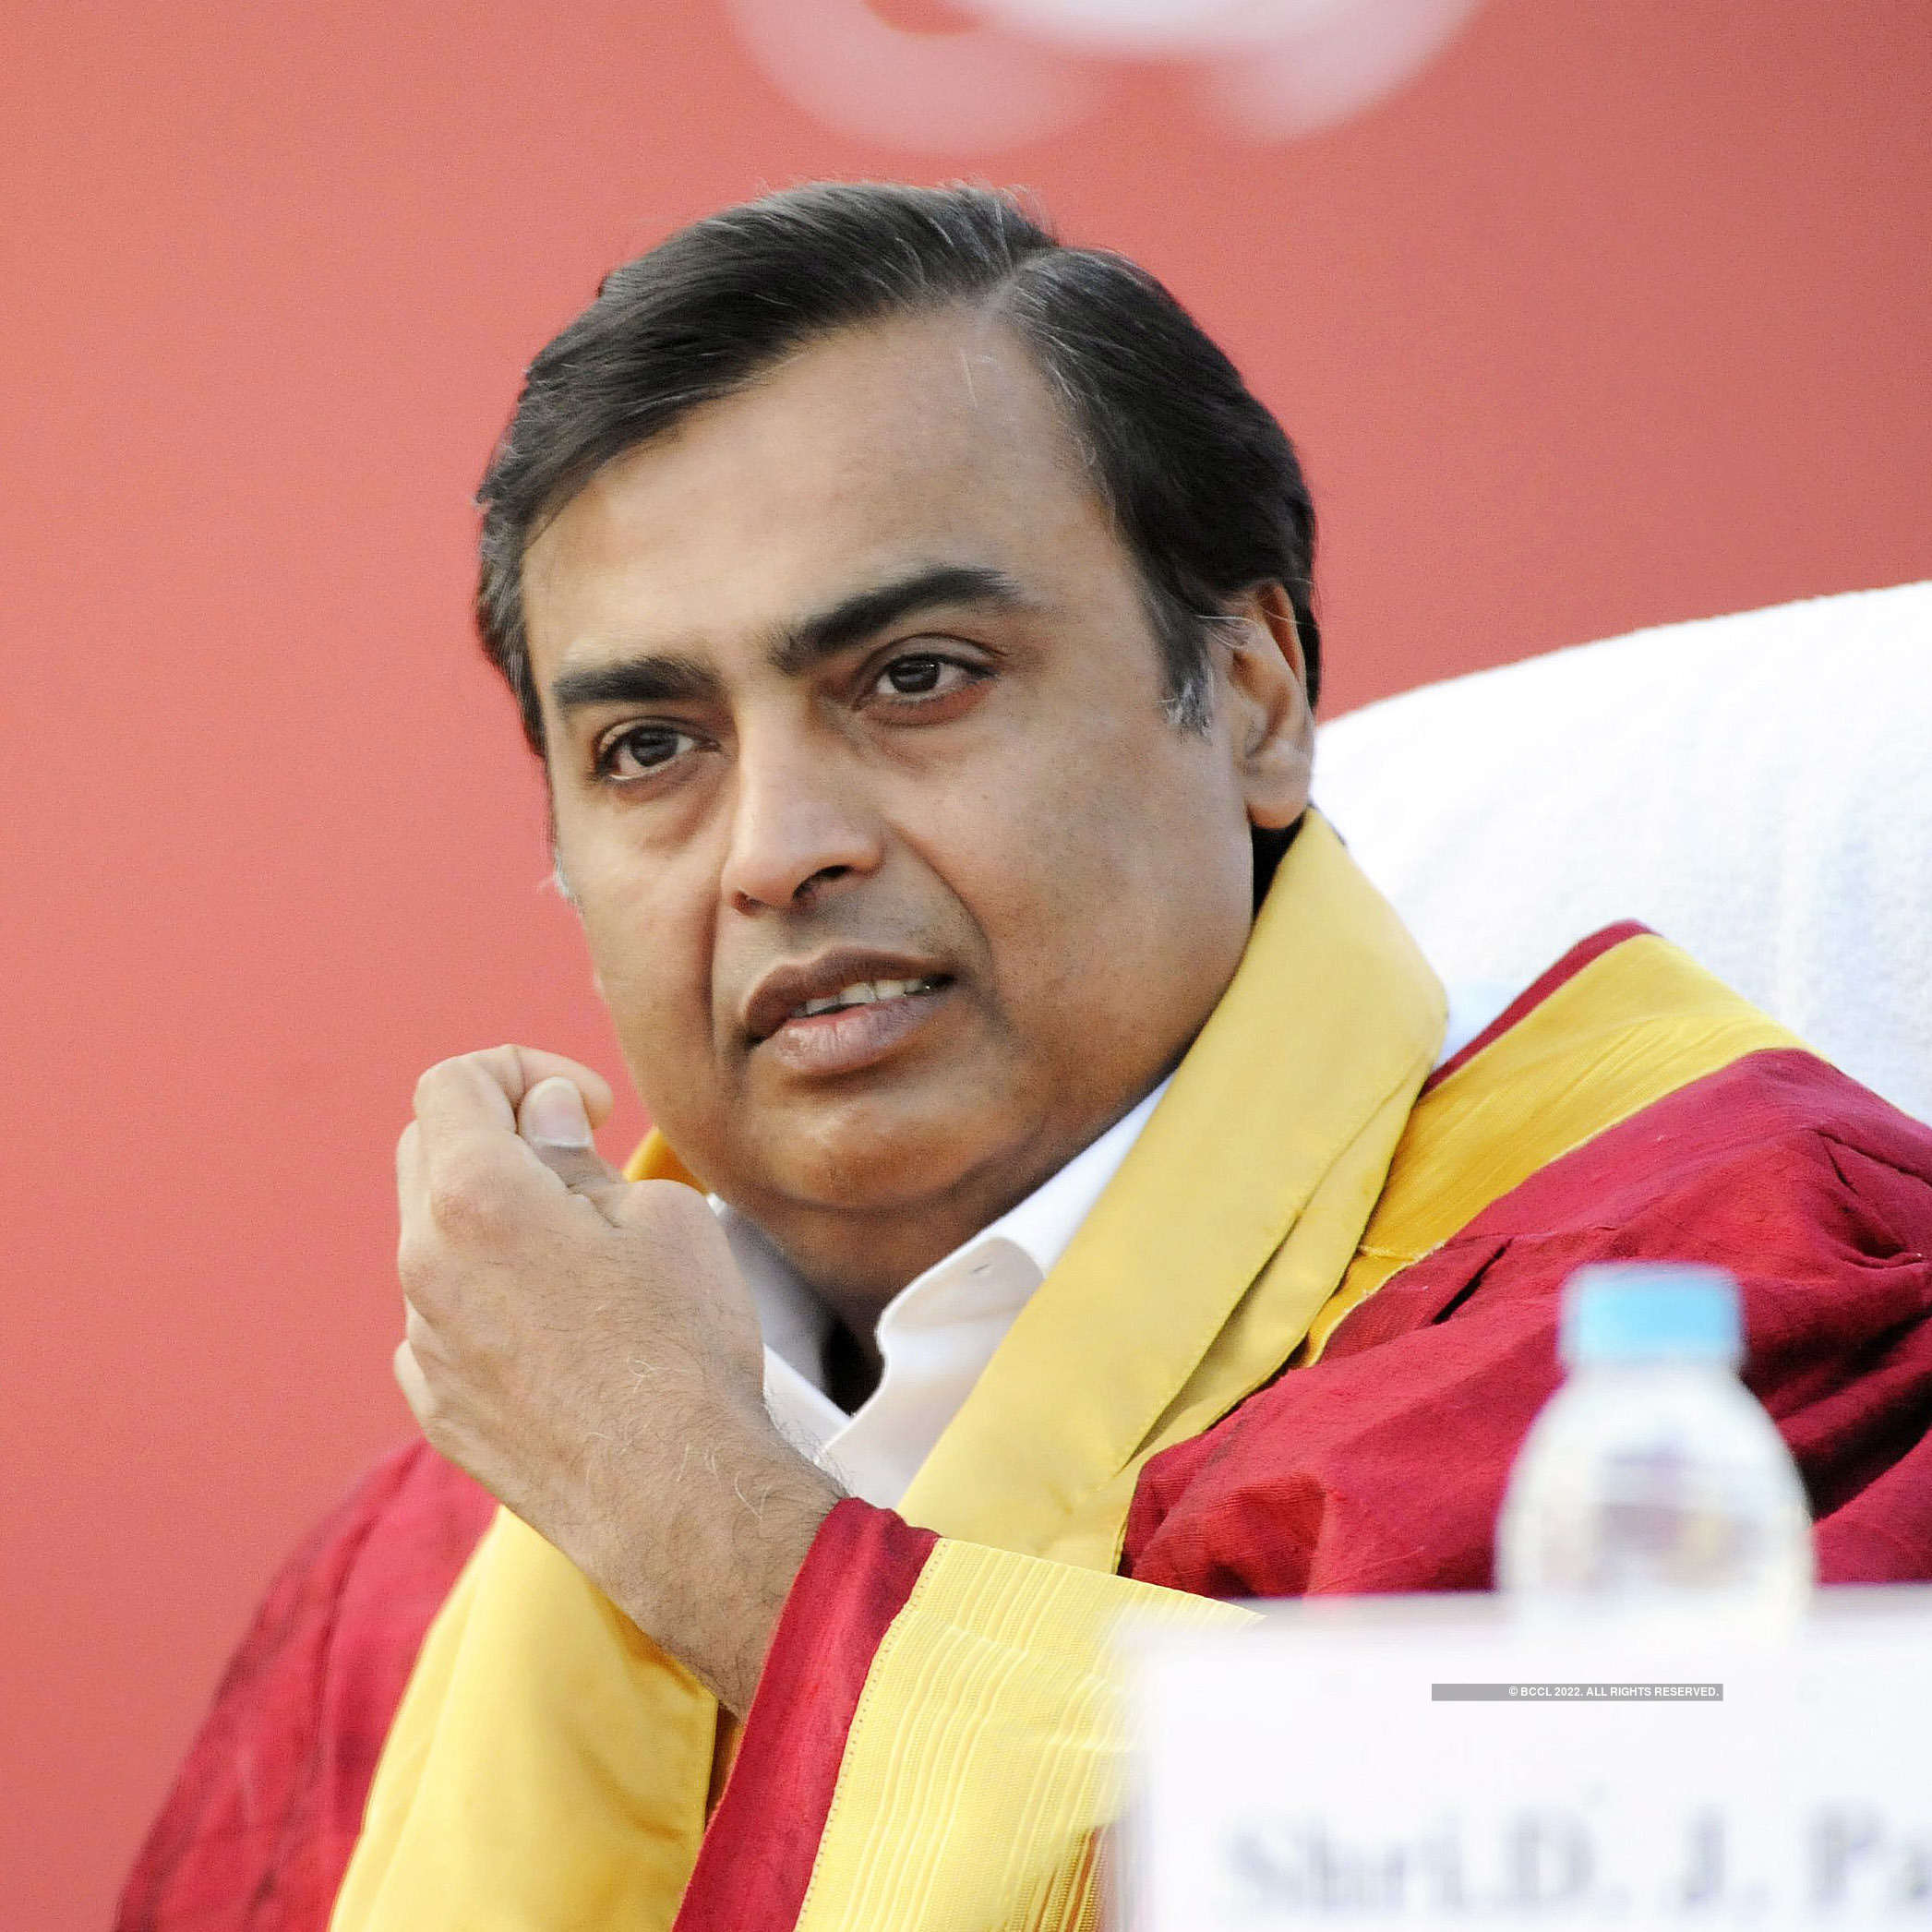 Pictures of India's richest man Mukesh Ambani, an epitome ...